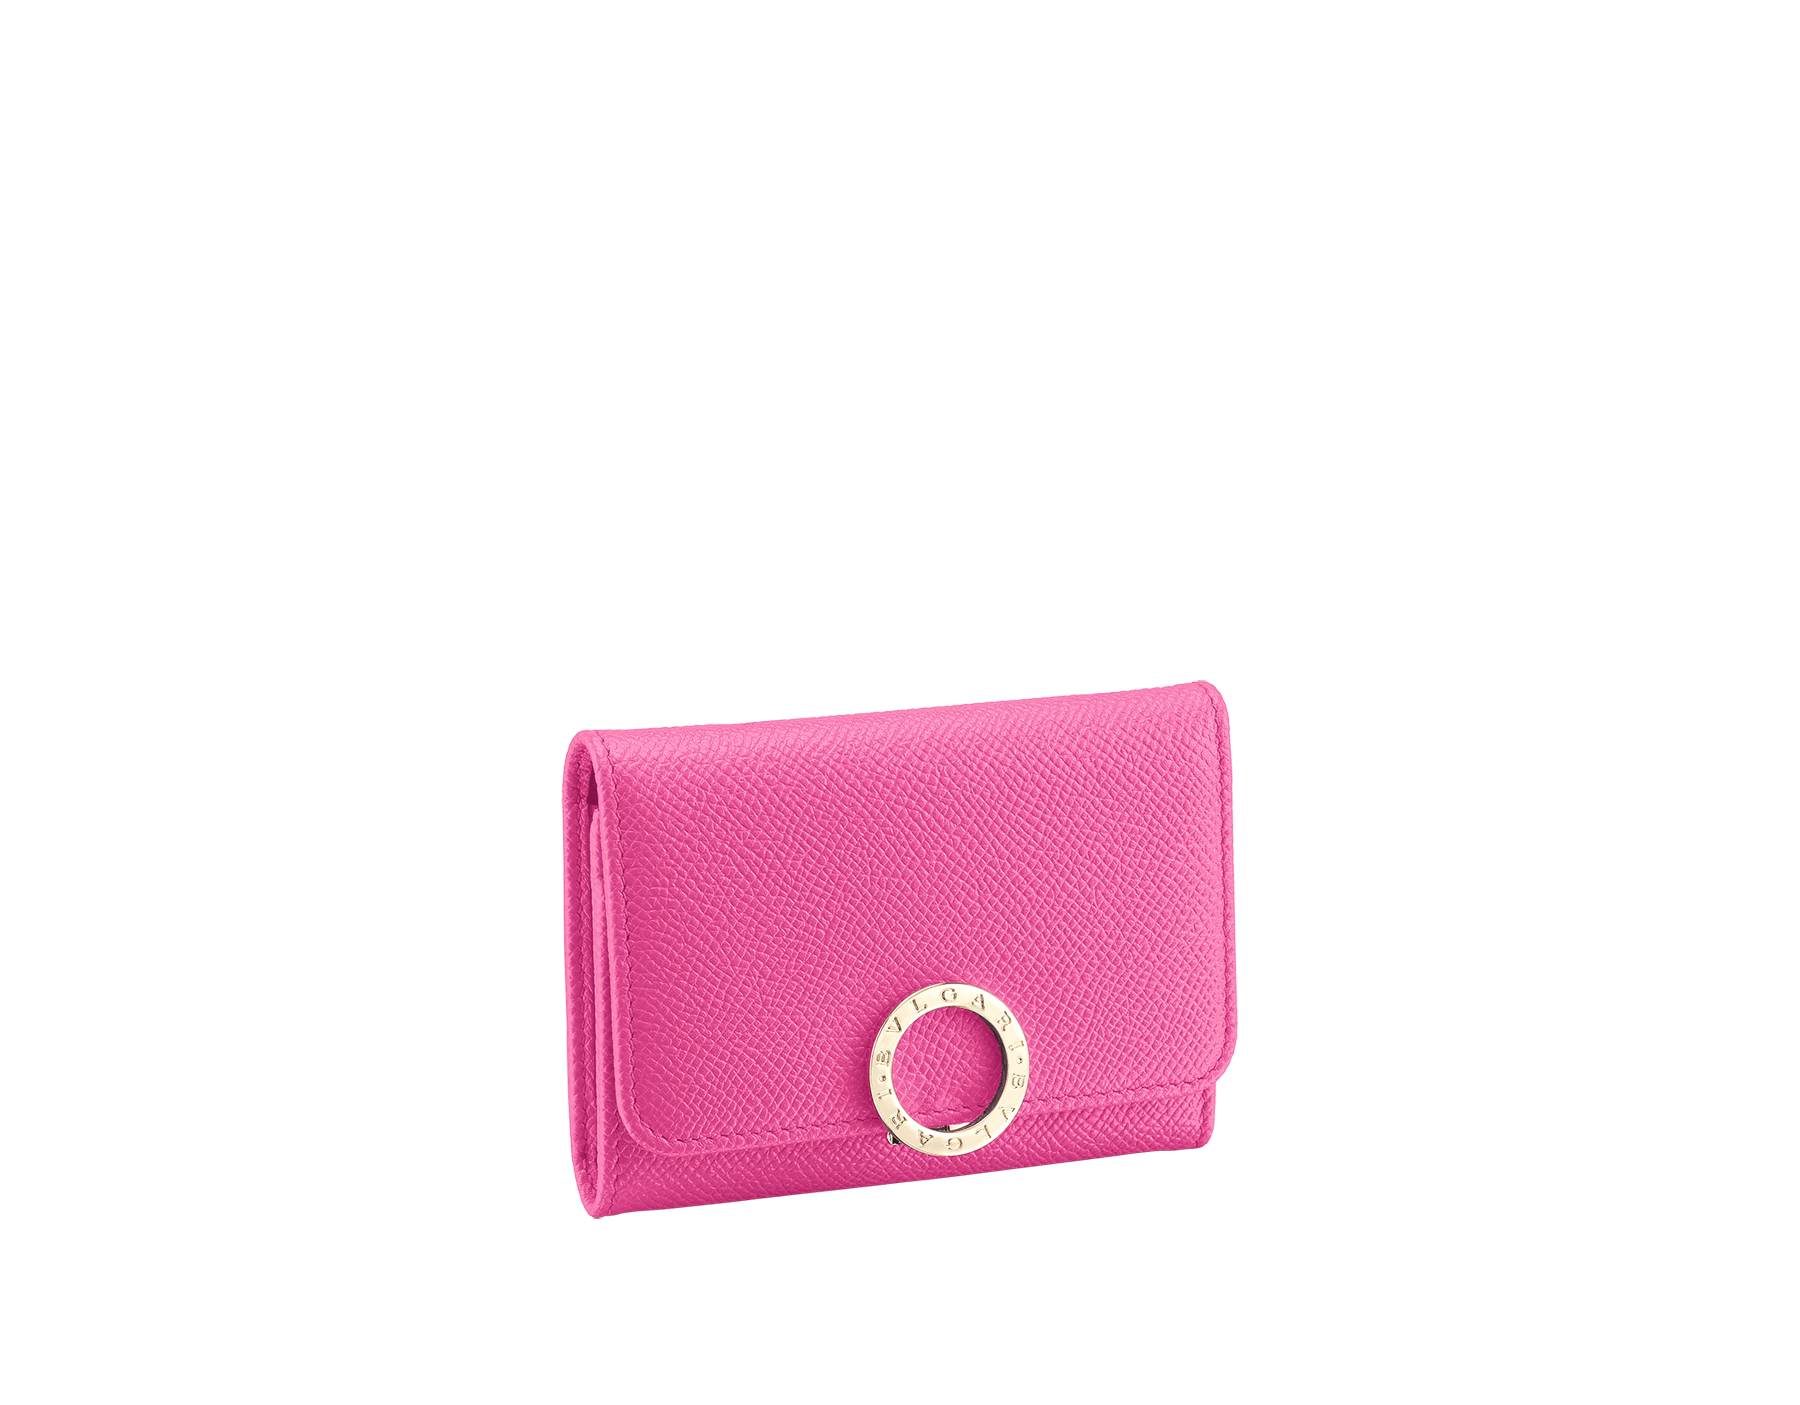 BVLGARI BVLGARI business card holder in carmine jasper grain calf leather and jazzy tourmaline nappa leather. Iconic logo closure clip in light gold plated brass 579-BC-HOLDER-BGCLb image 1